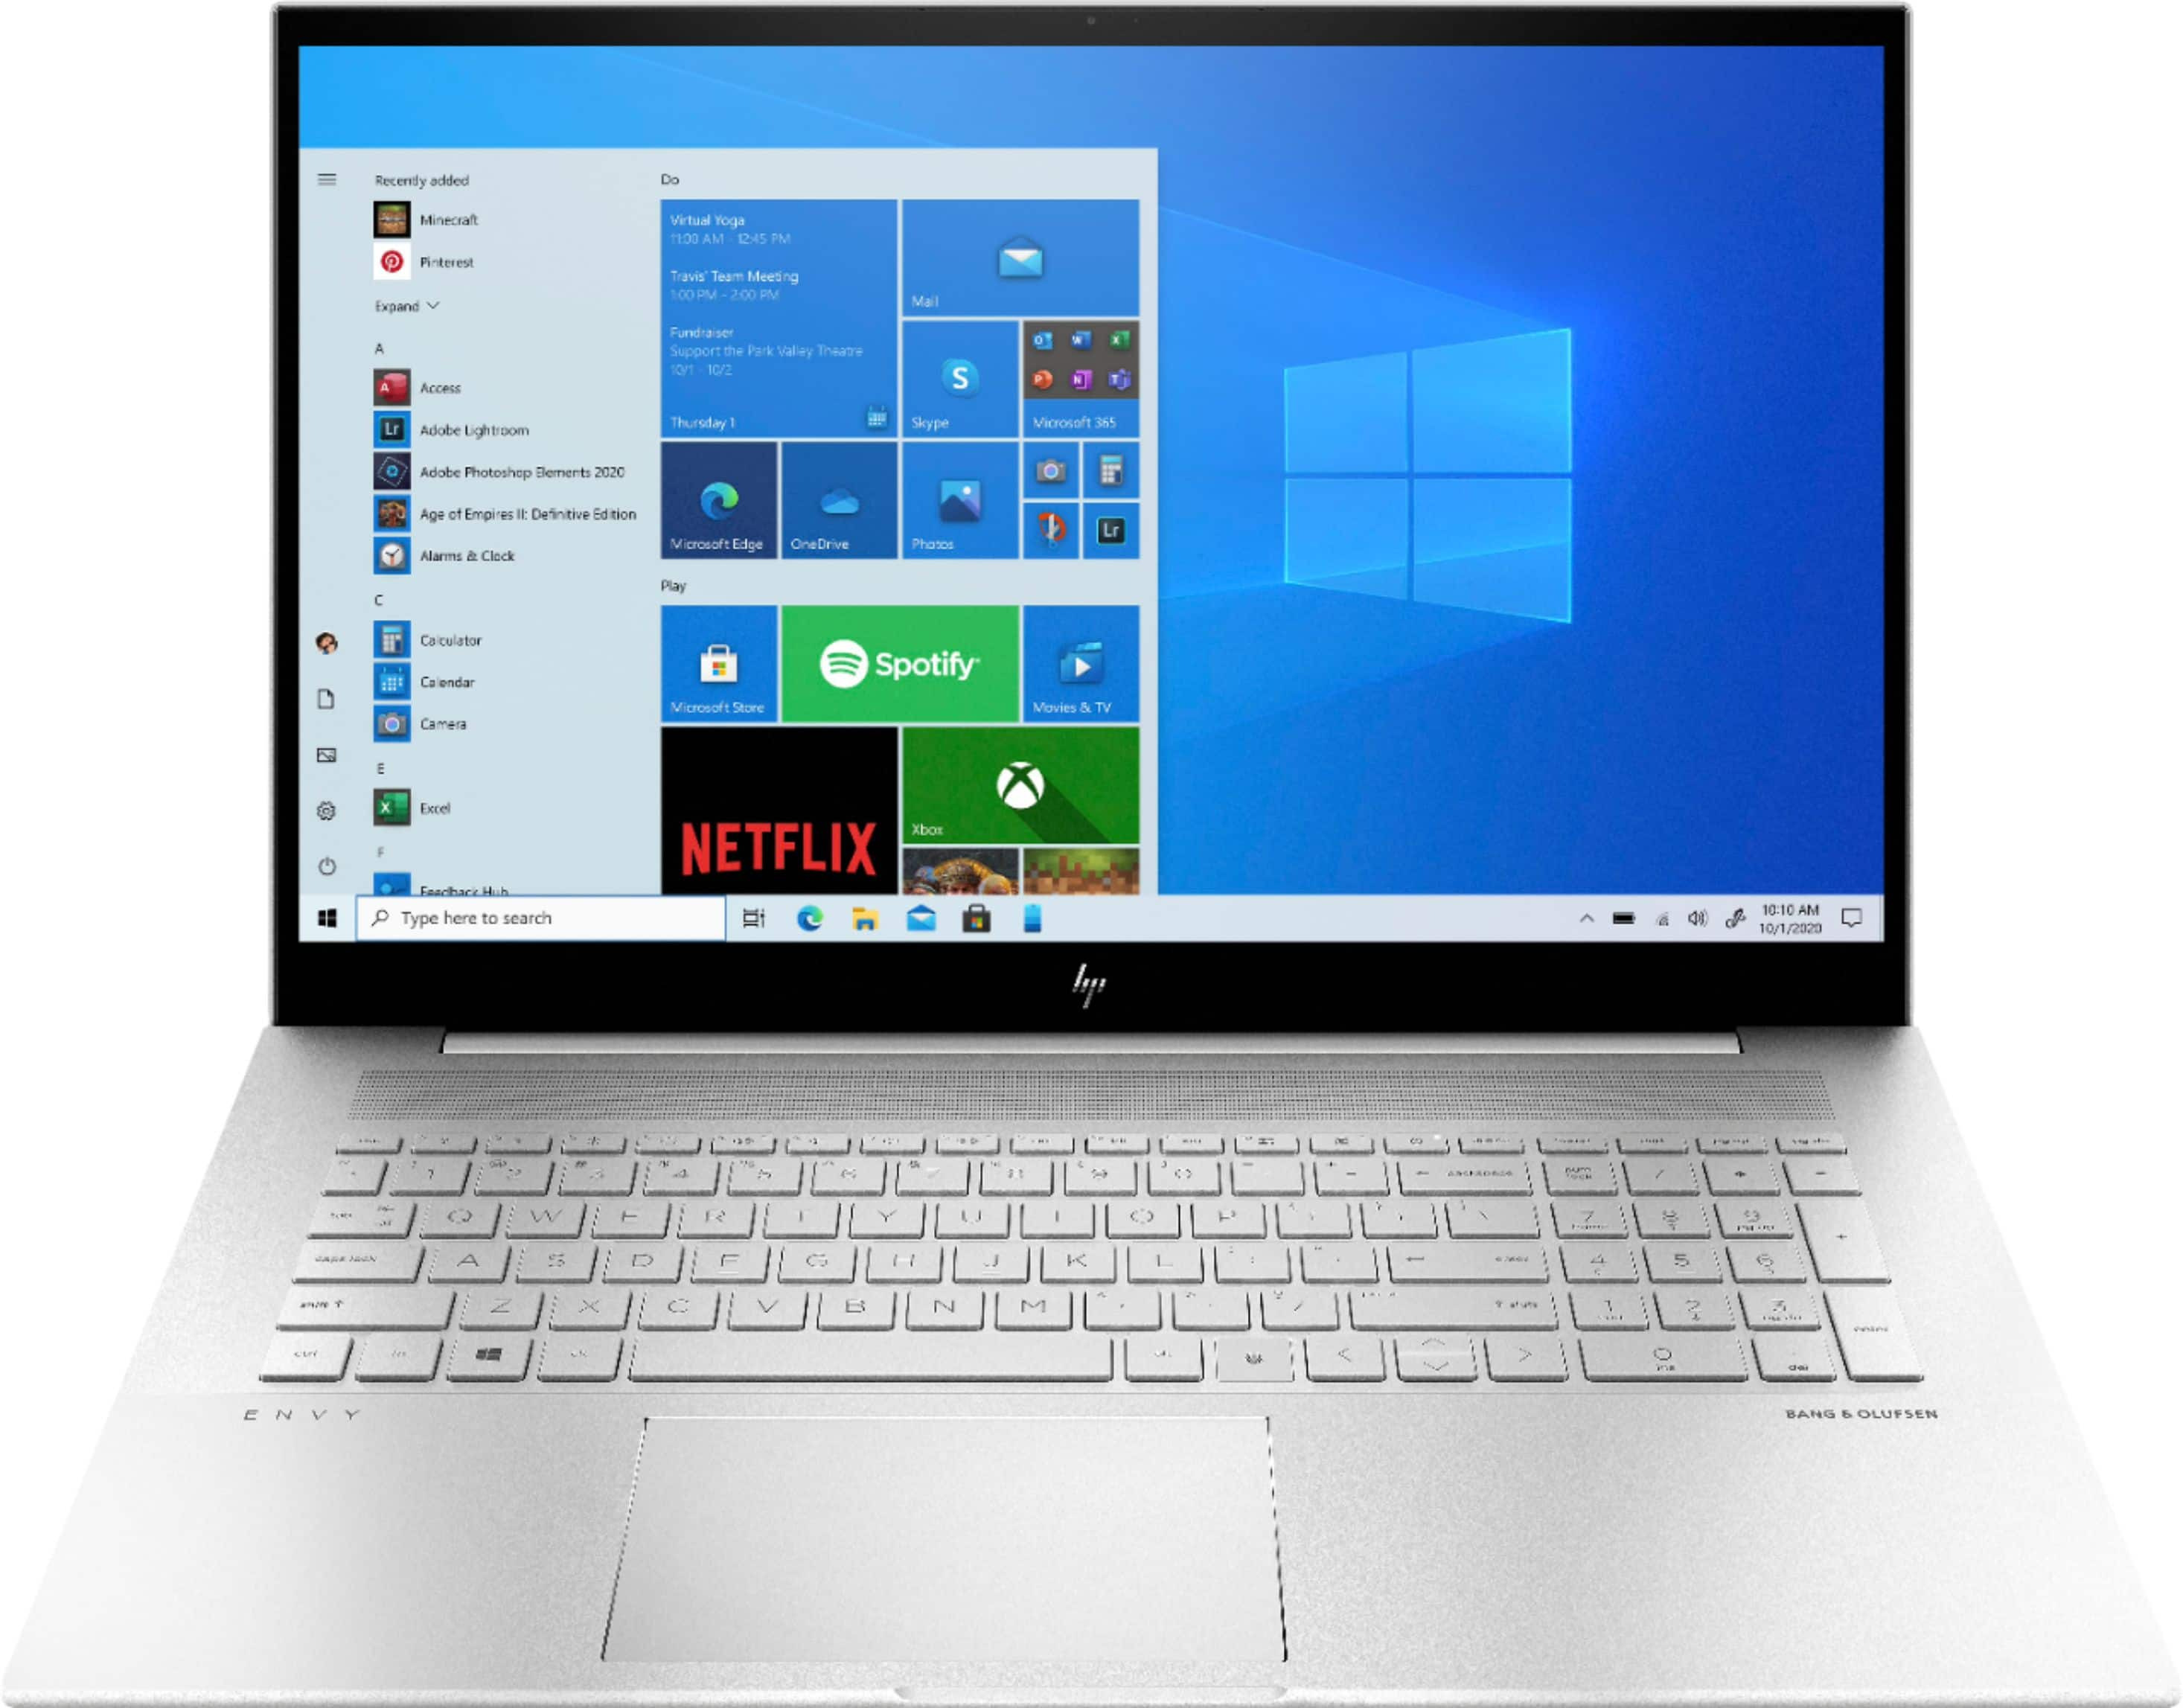 """HP - ENVY 17.3"""" Touch-Screen Laptop - Intel Core i7 - 12GB Memory - 512GB SSD + 32GB Intel Optane - Natural Silver $829.99 with student deal"""